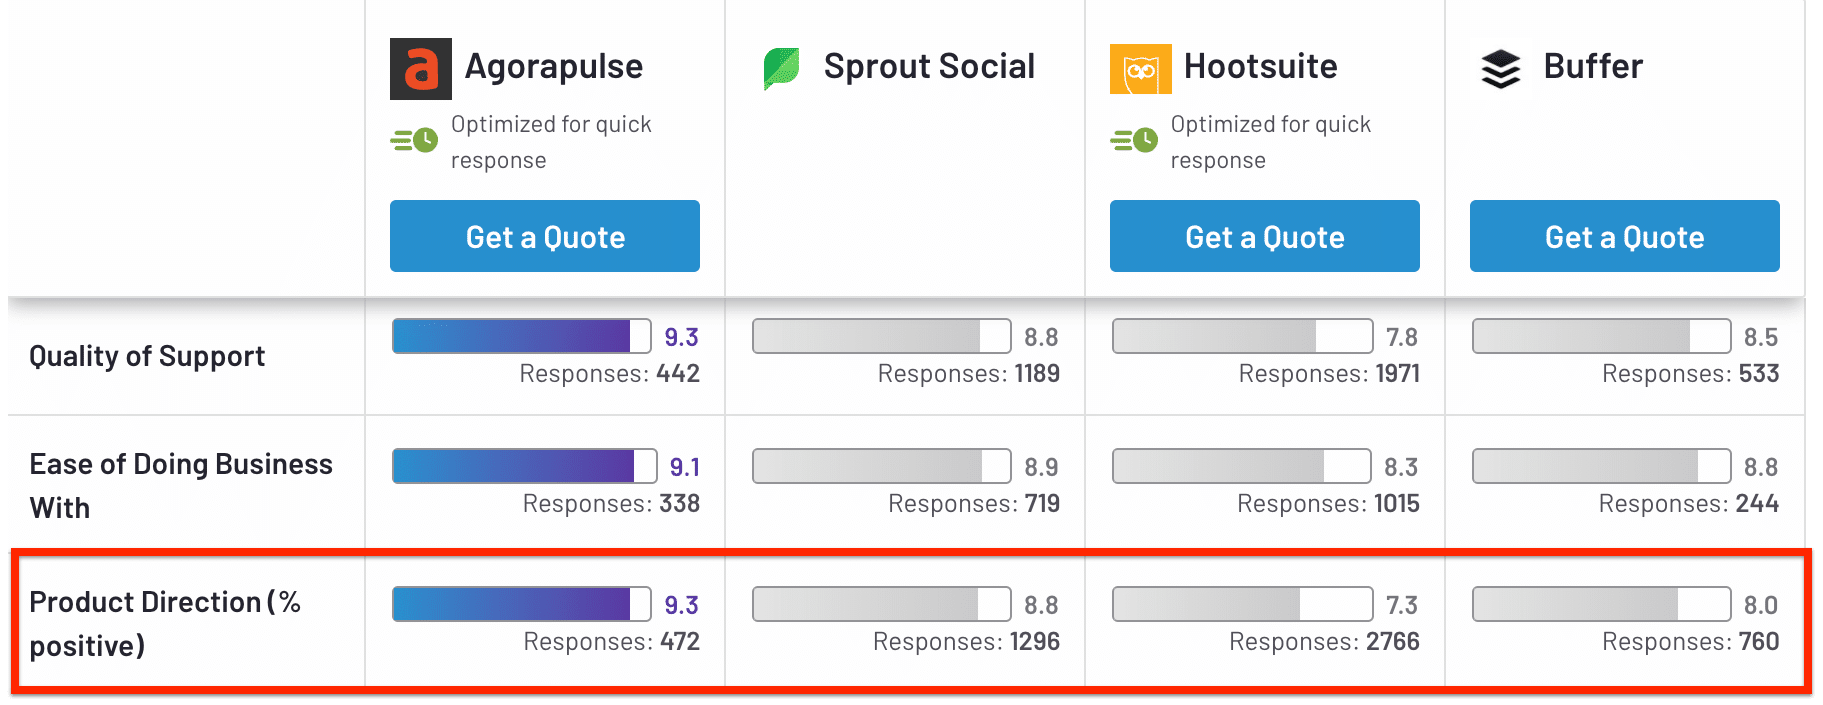 Agorapulse ranks the highest in product direction; Hootsuite ranks the lowest.